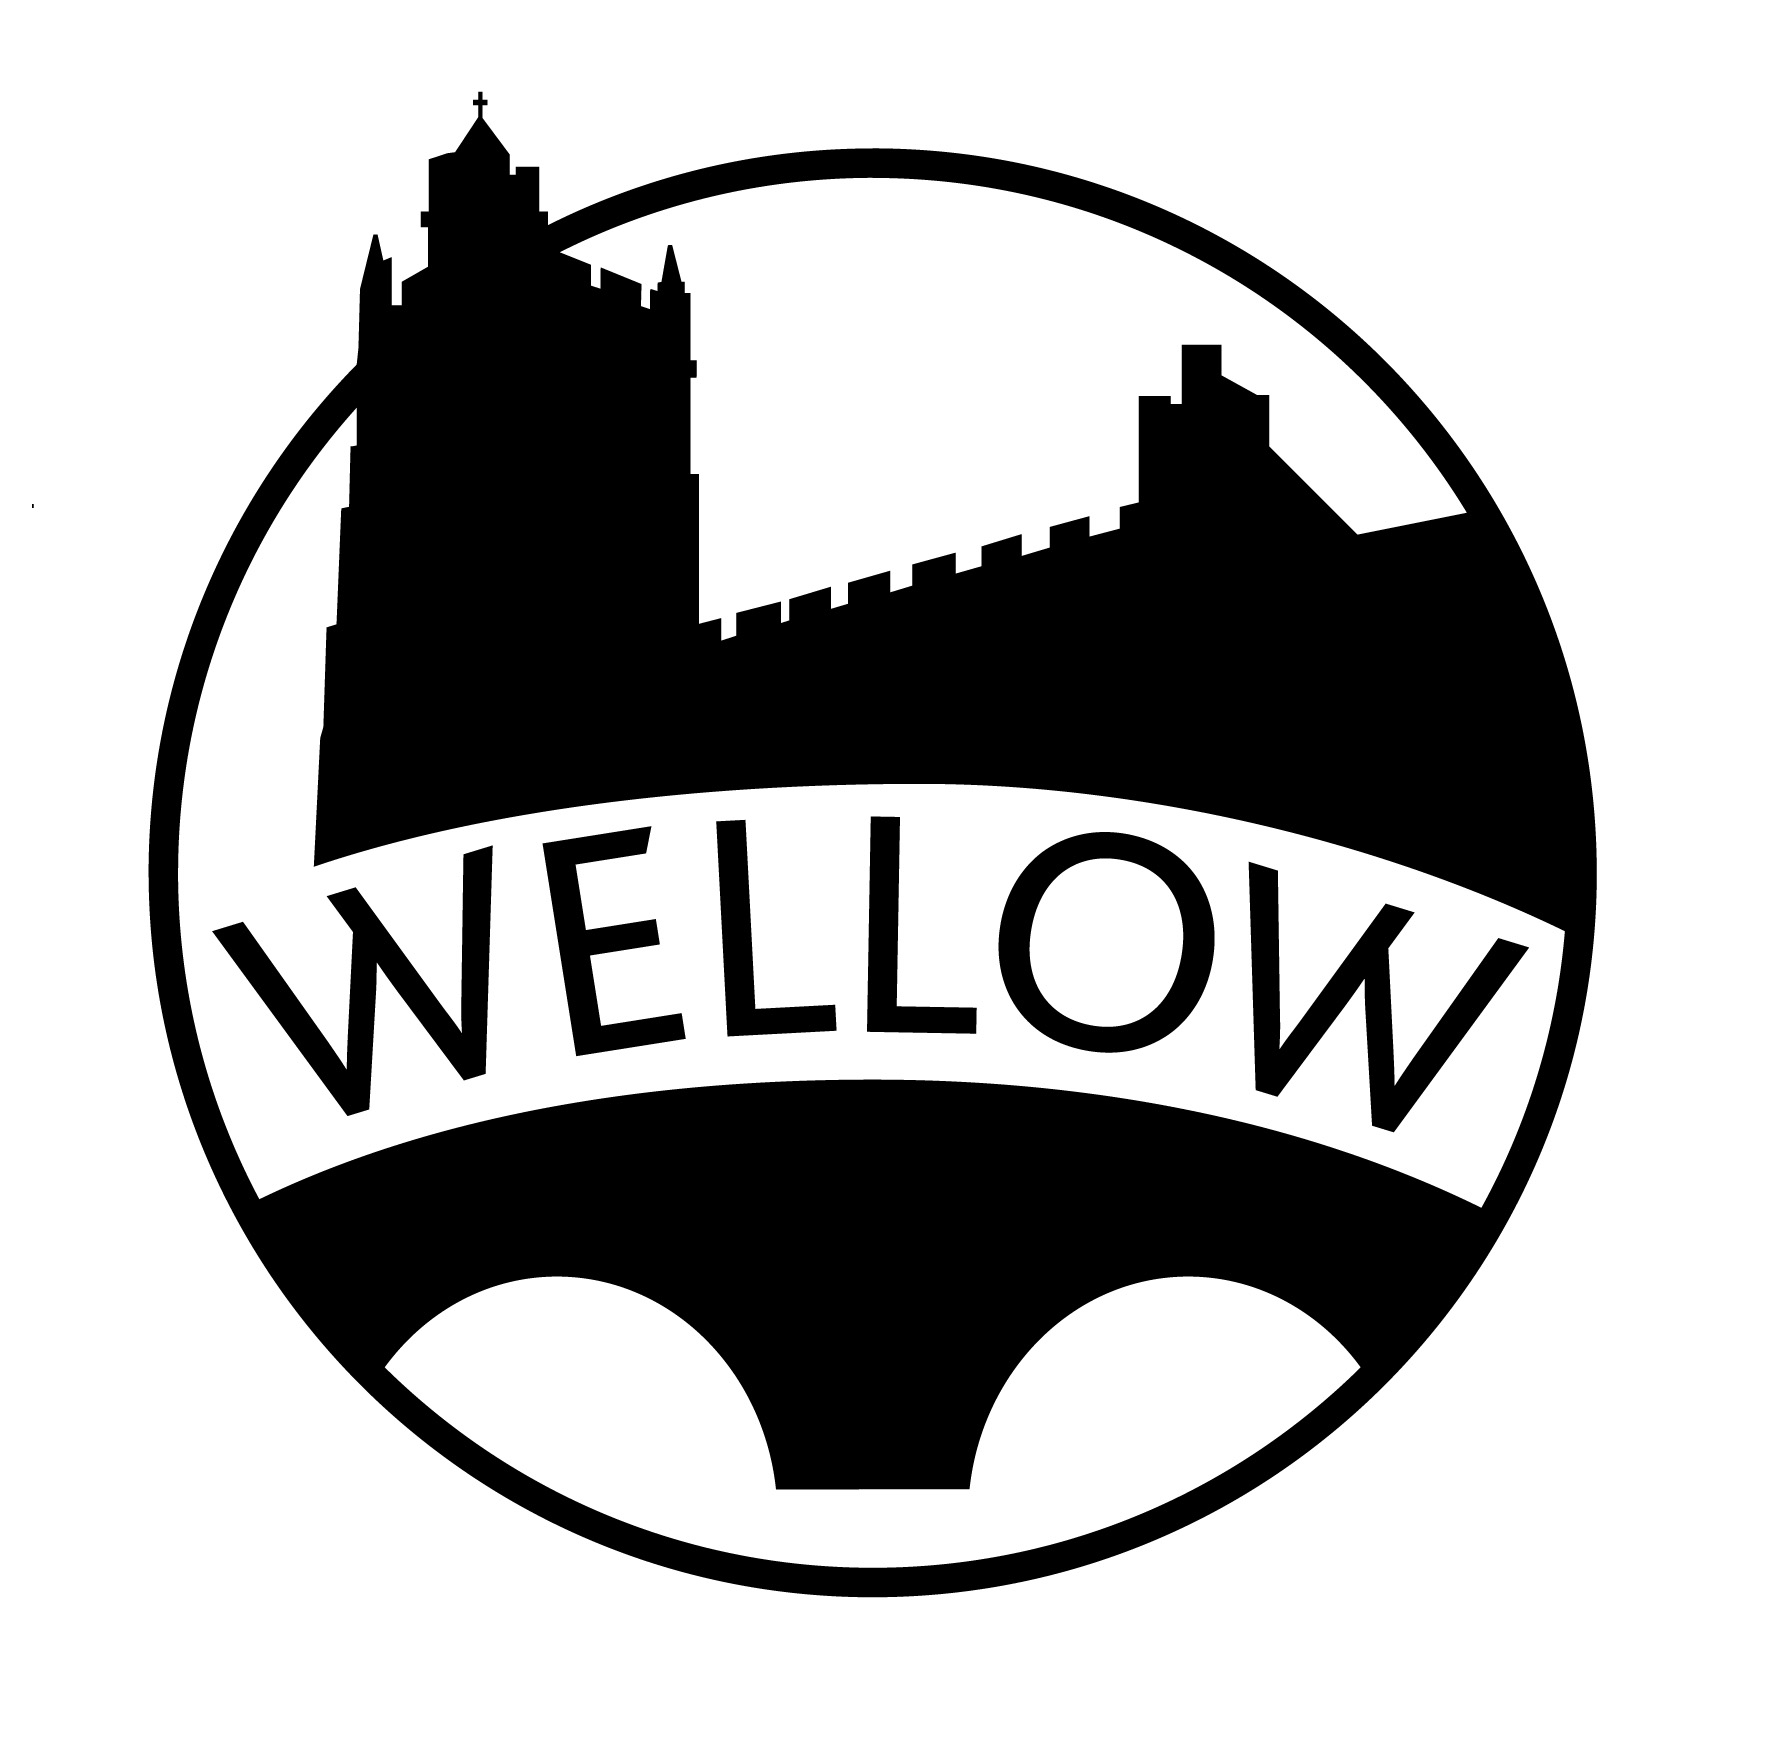 Wellow logo